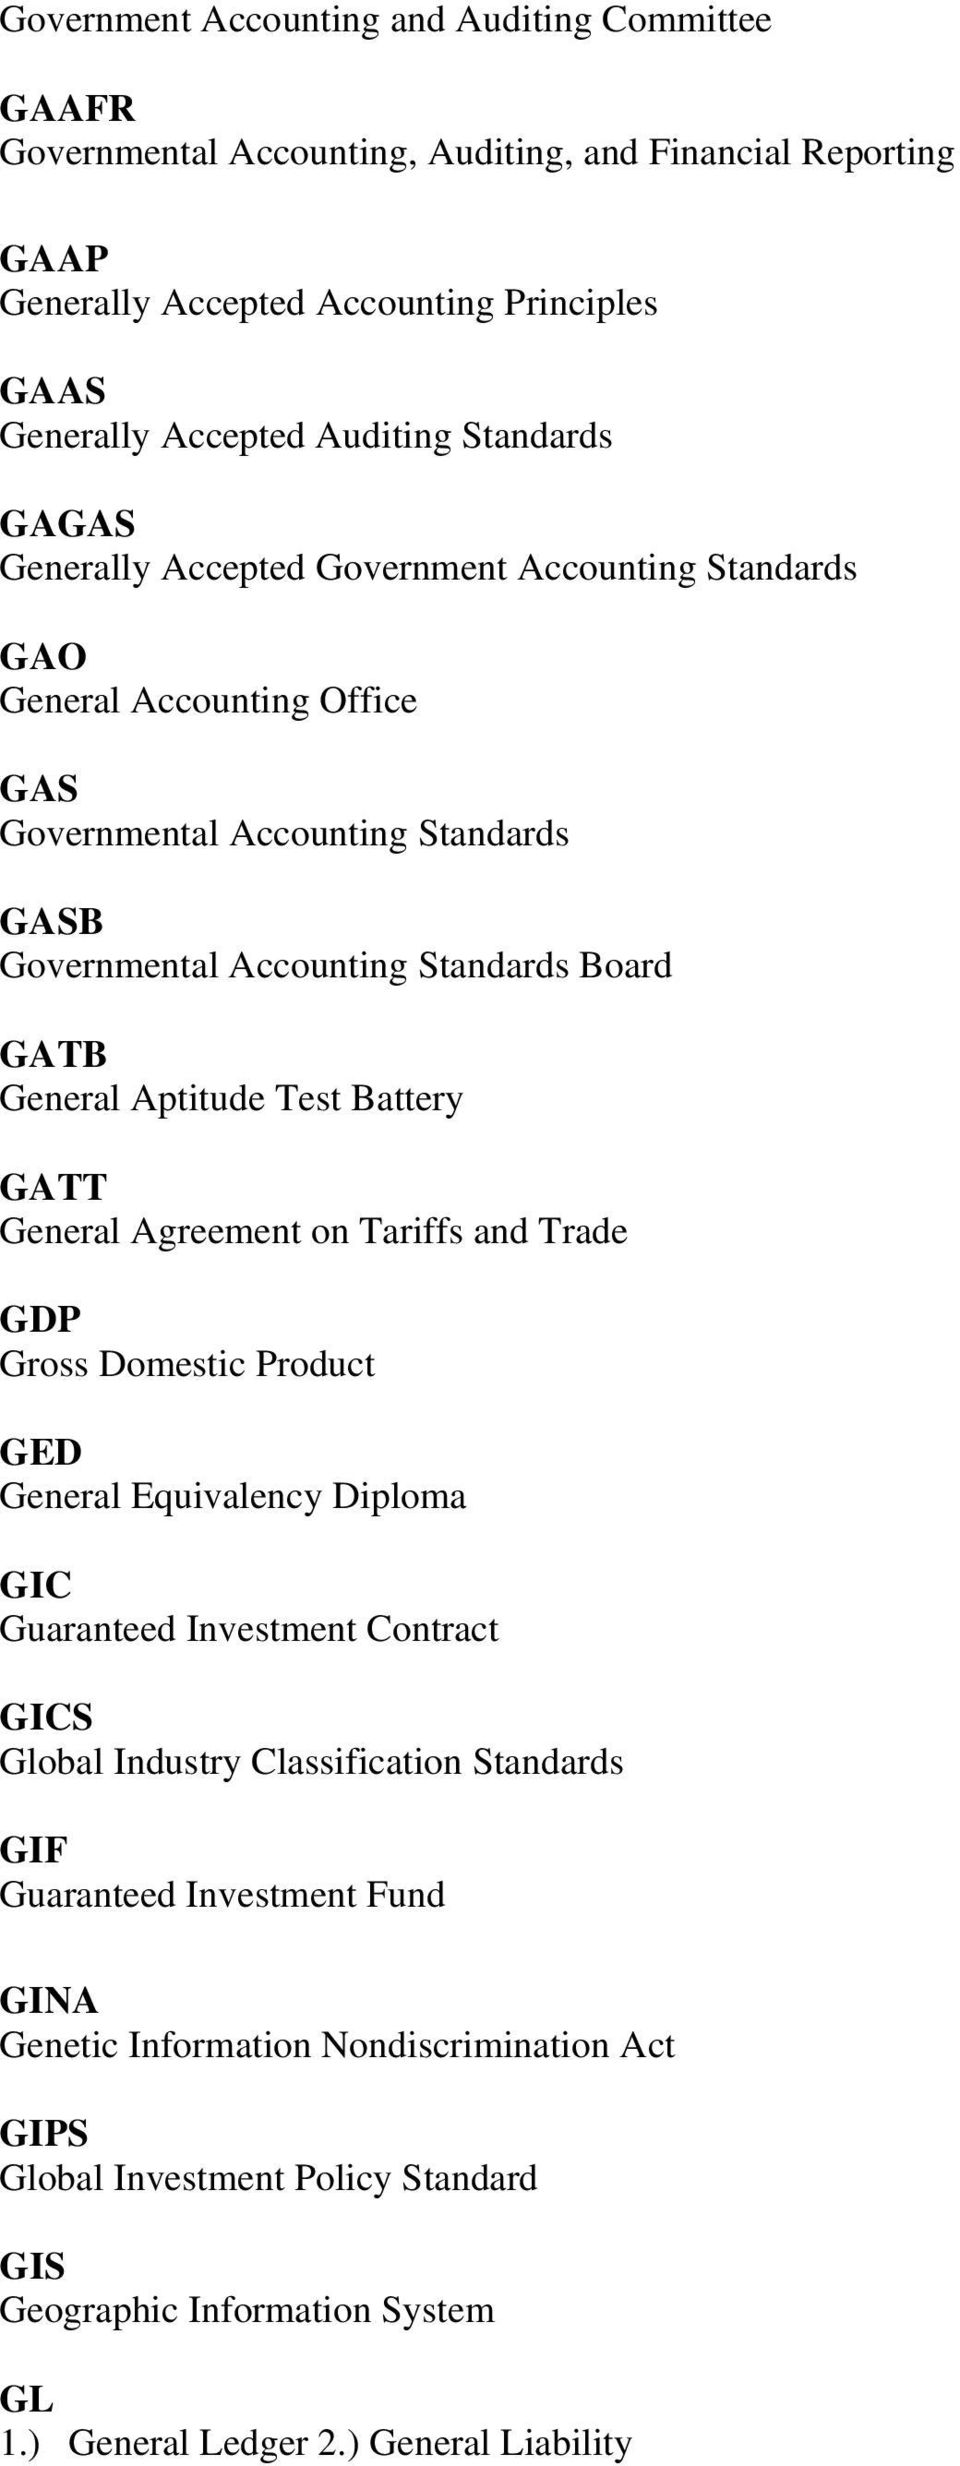 Aptitude Test Battery GATT General Agreement on Tariffs and Trade GDP Gross Domestic Product GED General Equivalency Diploma GIC Guaranteed Investment Contract GICS Global Industry Classification